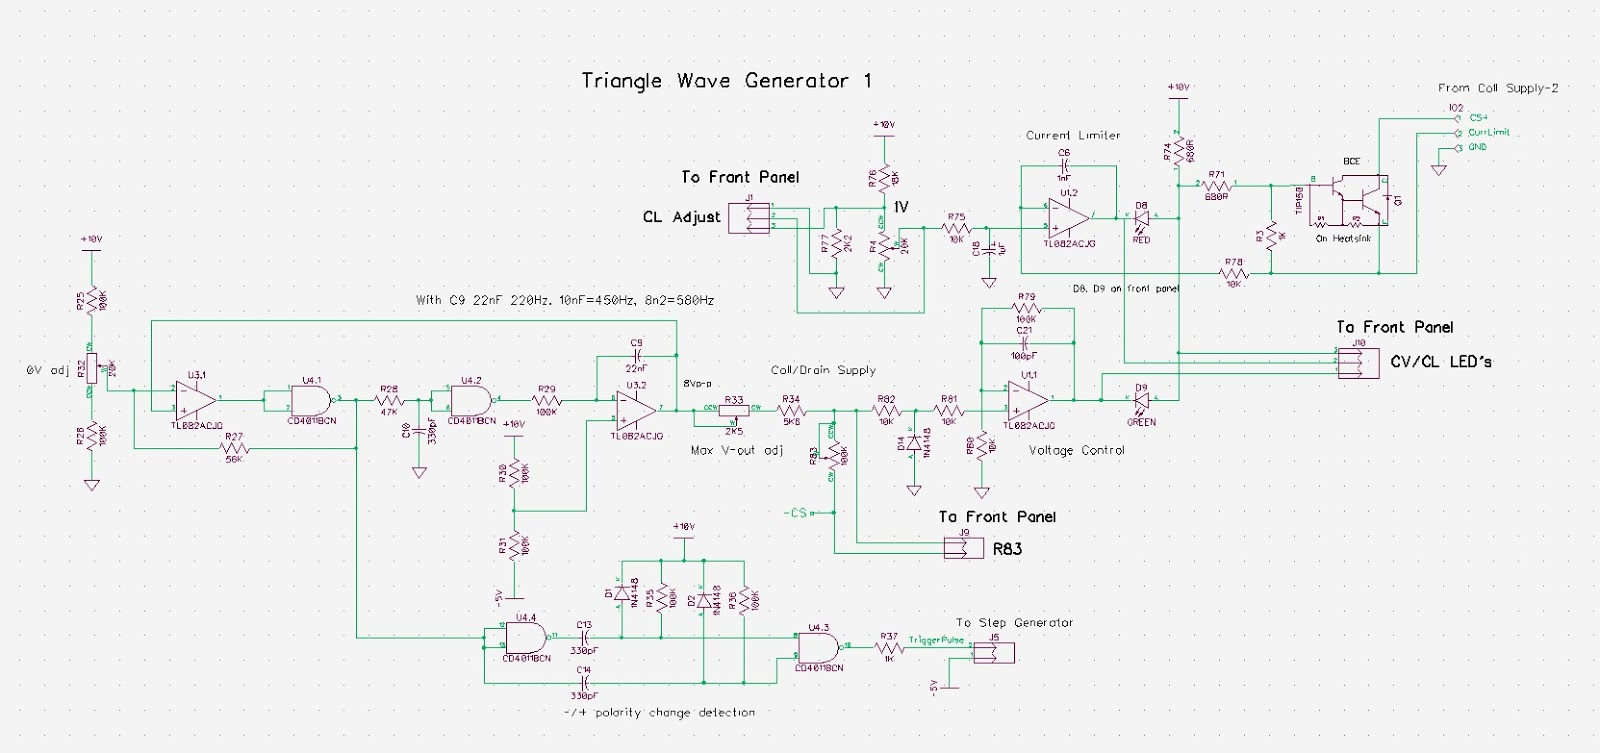 Pauls Diy Electronics Blog Building Another Curve Tracer Circuit Diagram If Signal Generator Electronic Schematic Let Me Go Through This A Step At Time The Upper Left Portion Comprises Triangle Waveform